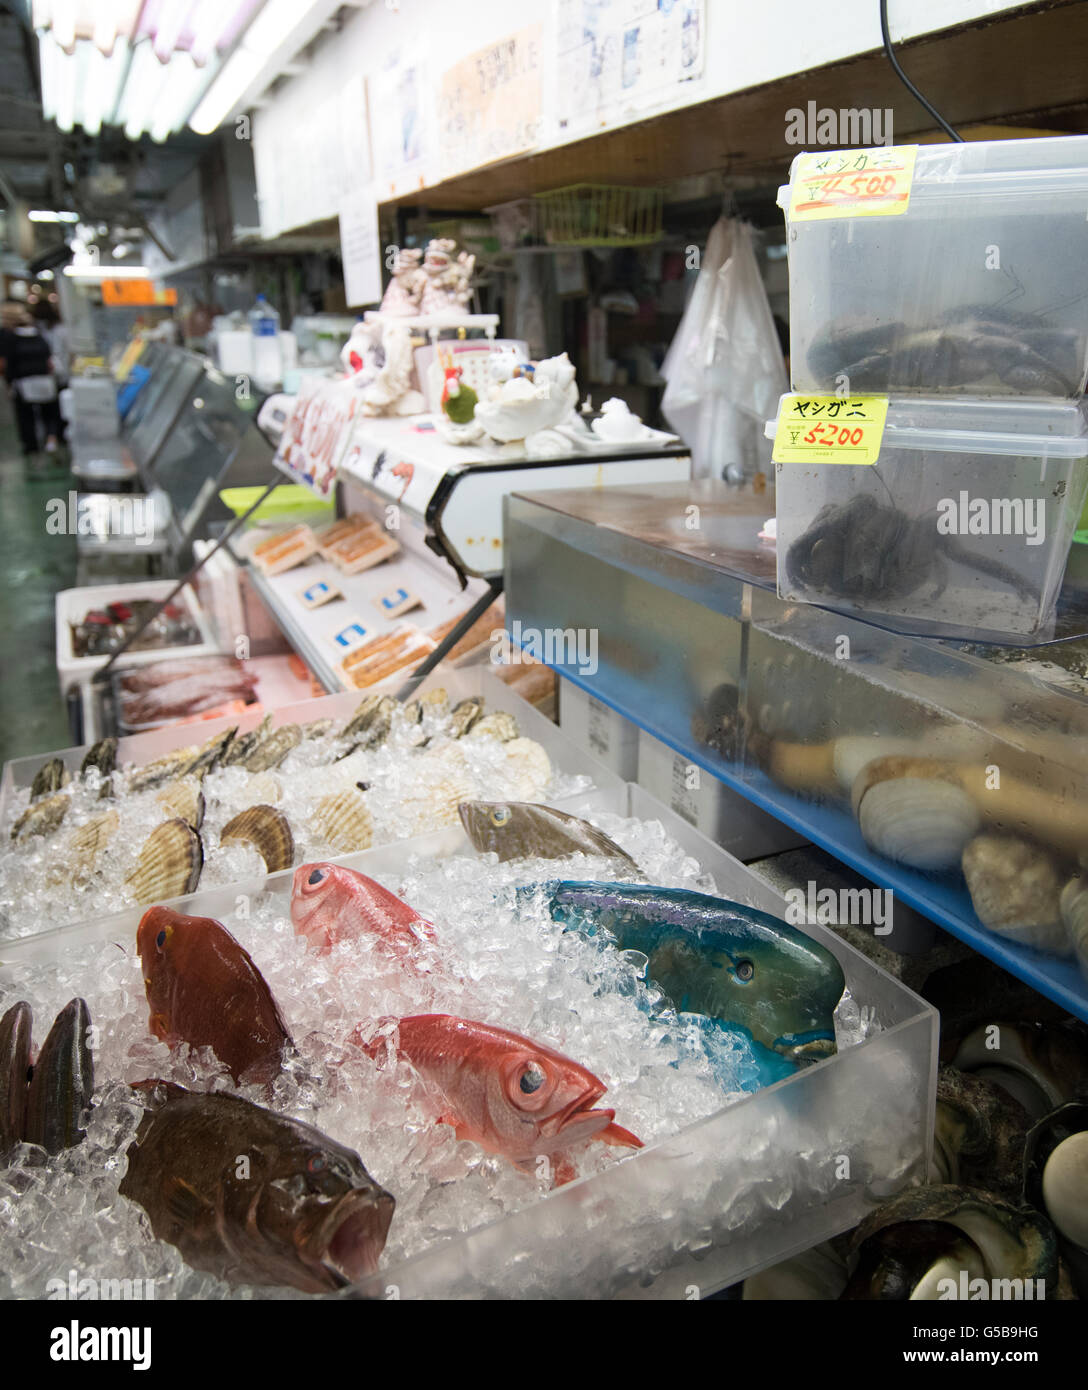 Fish, clams and coconut crabs on sale at Makishi Public Market, Naha City, Okinawa, Japan - Stock Image